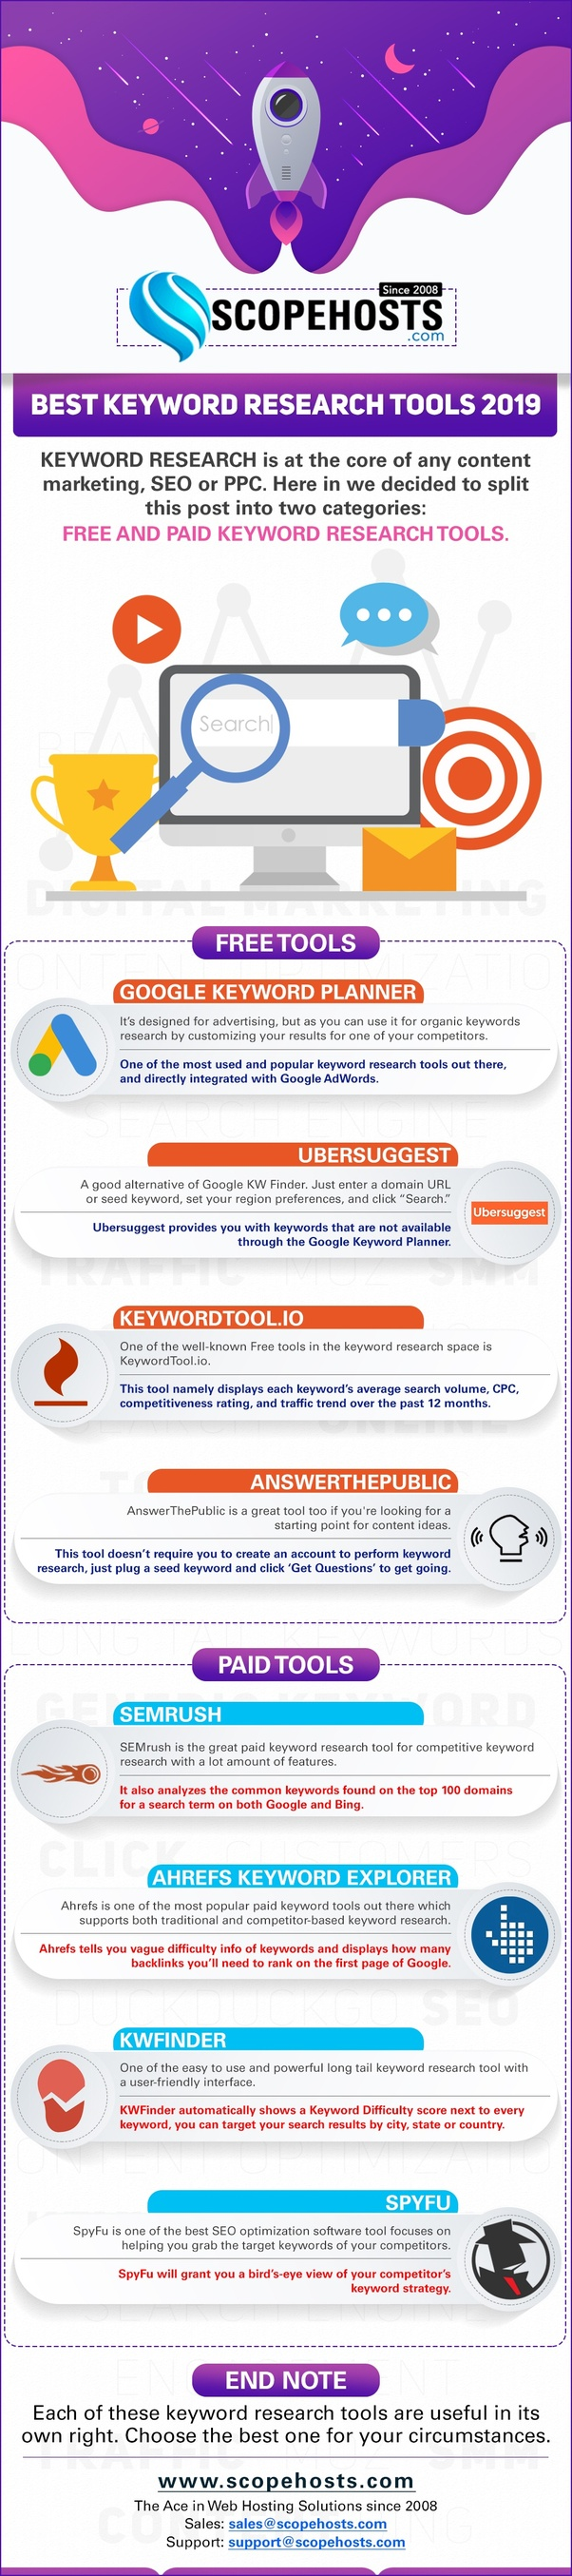 Why is KWFinder: SEO Keyword Tool so popular? - Quora